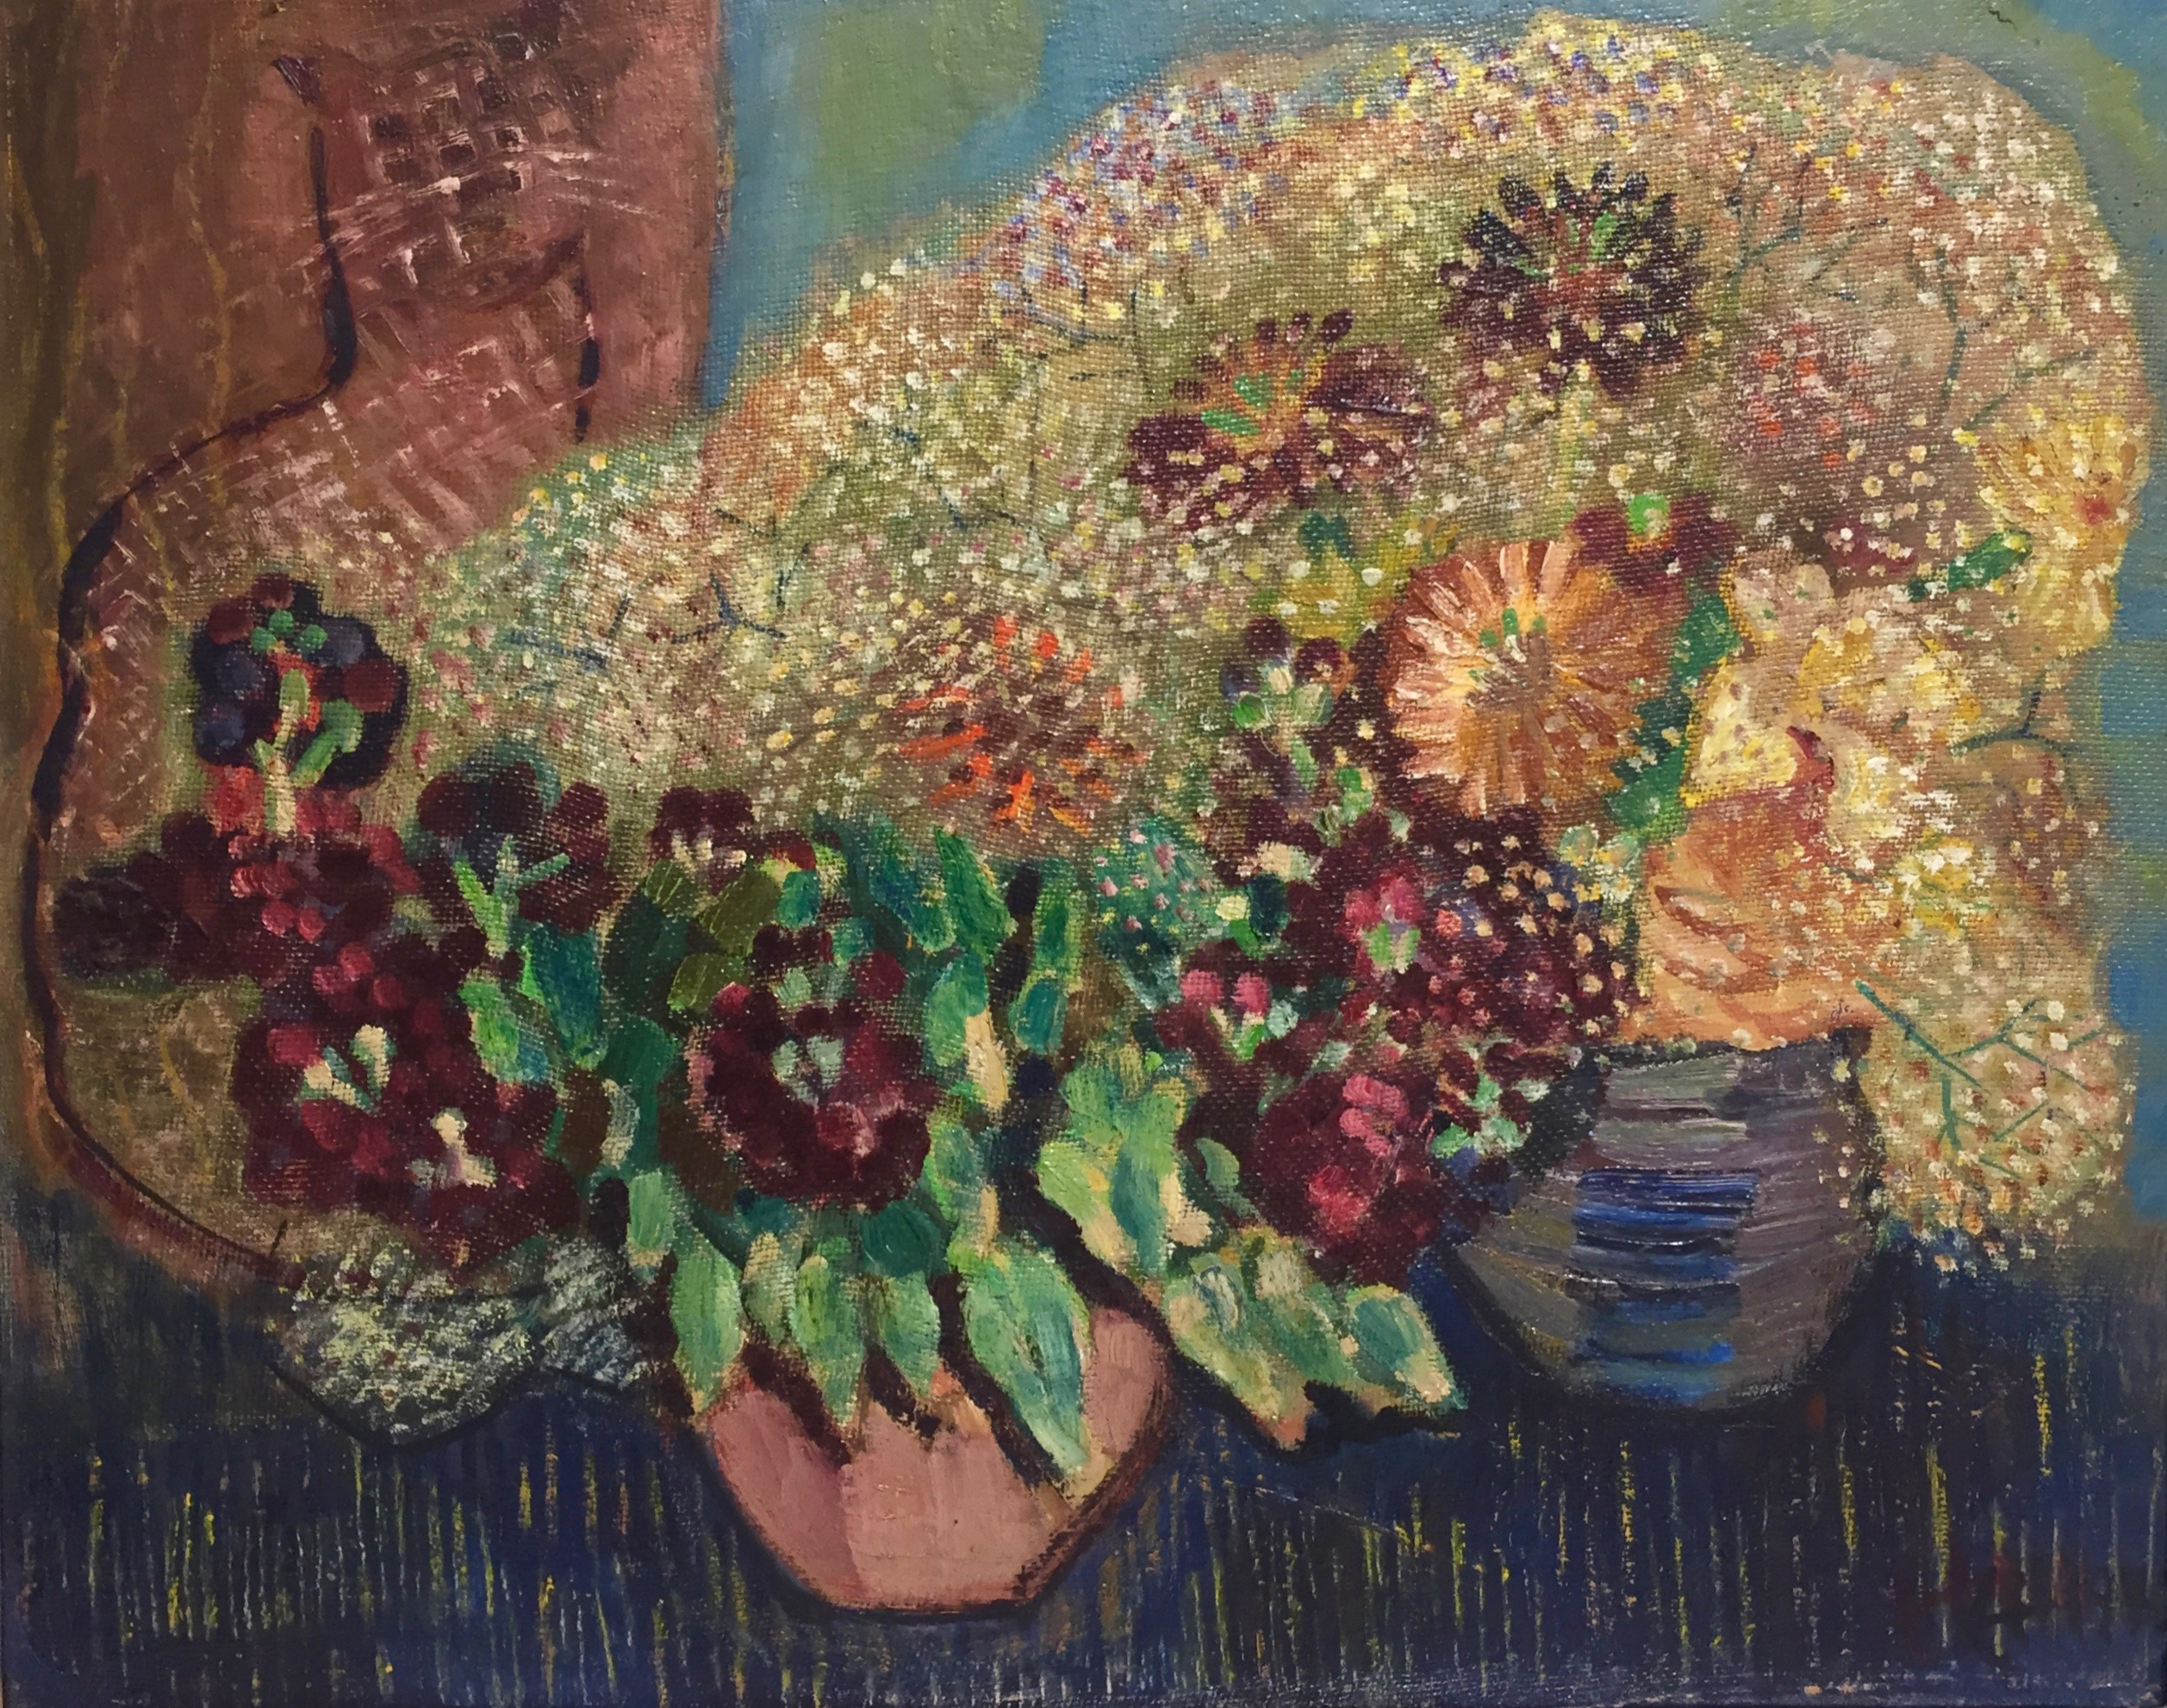 Erwin Hahs | Zinnias with Cat | 1940 | oil on hardboard | monogrammed and dated | 50 x 61.3